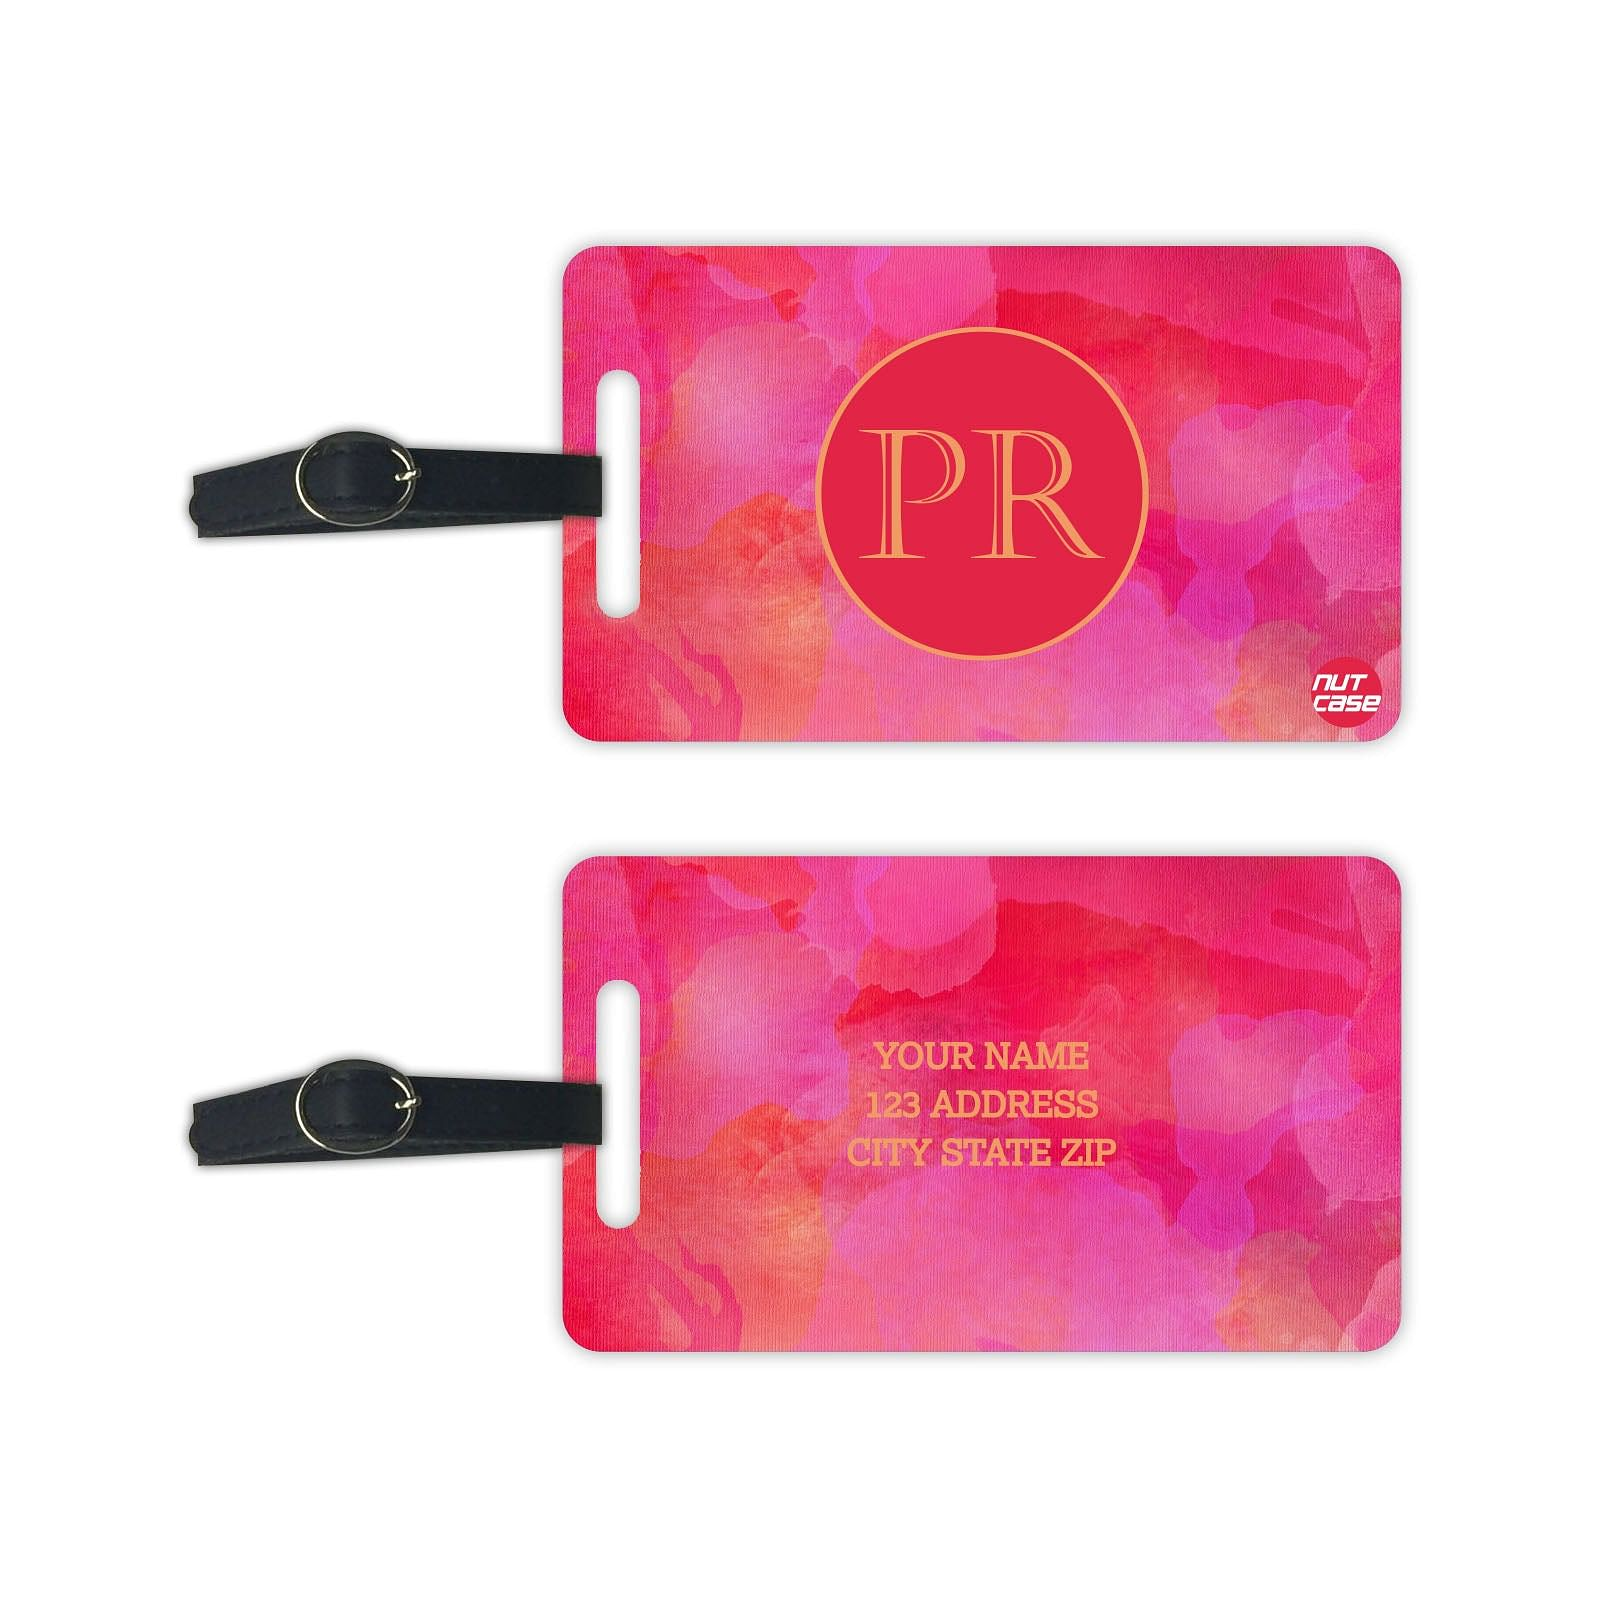 Personalized Luggage Tags Monogram Bag Tag with your Initials - Set of 2